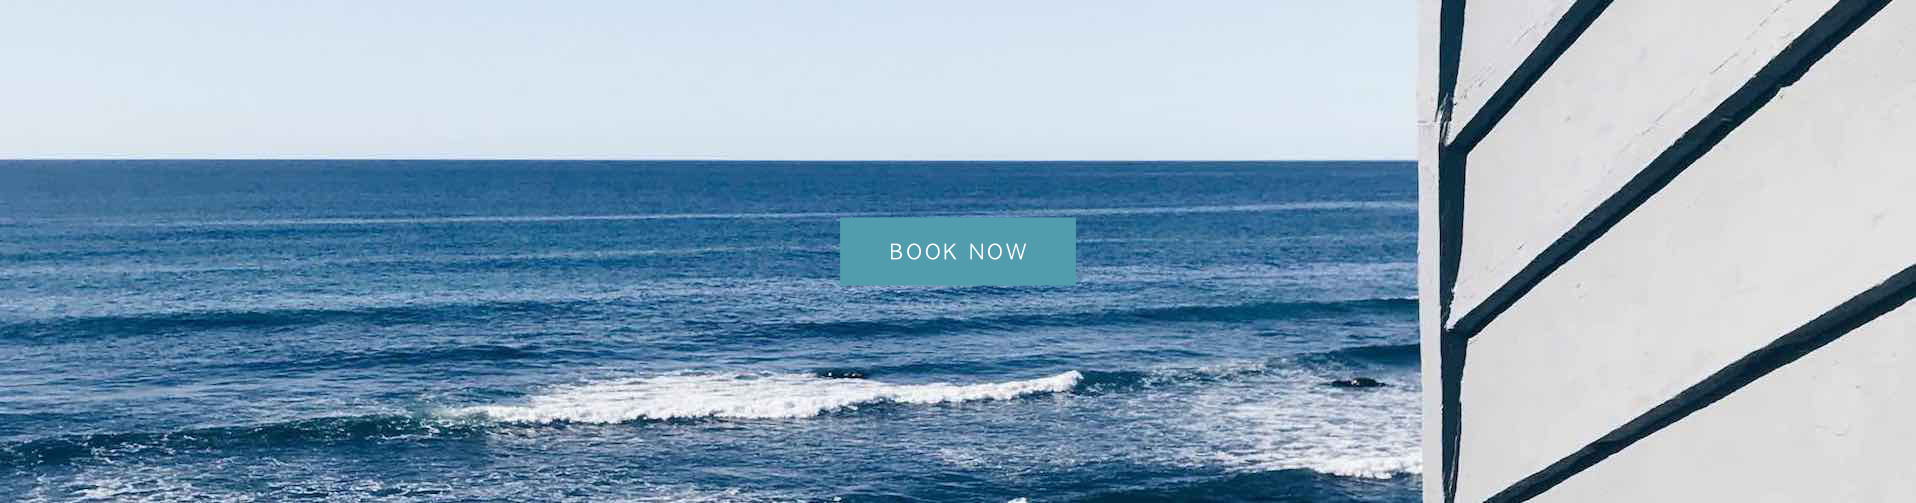 Oceanfront Holiday Accommodation on Tasmania's East Coast at The Mariner